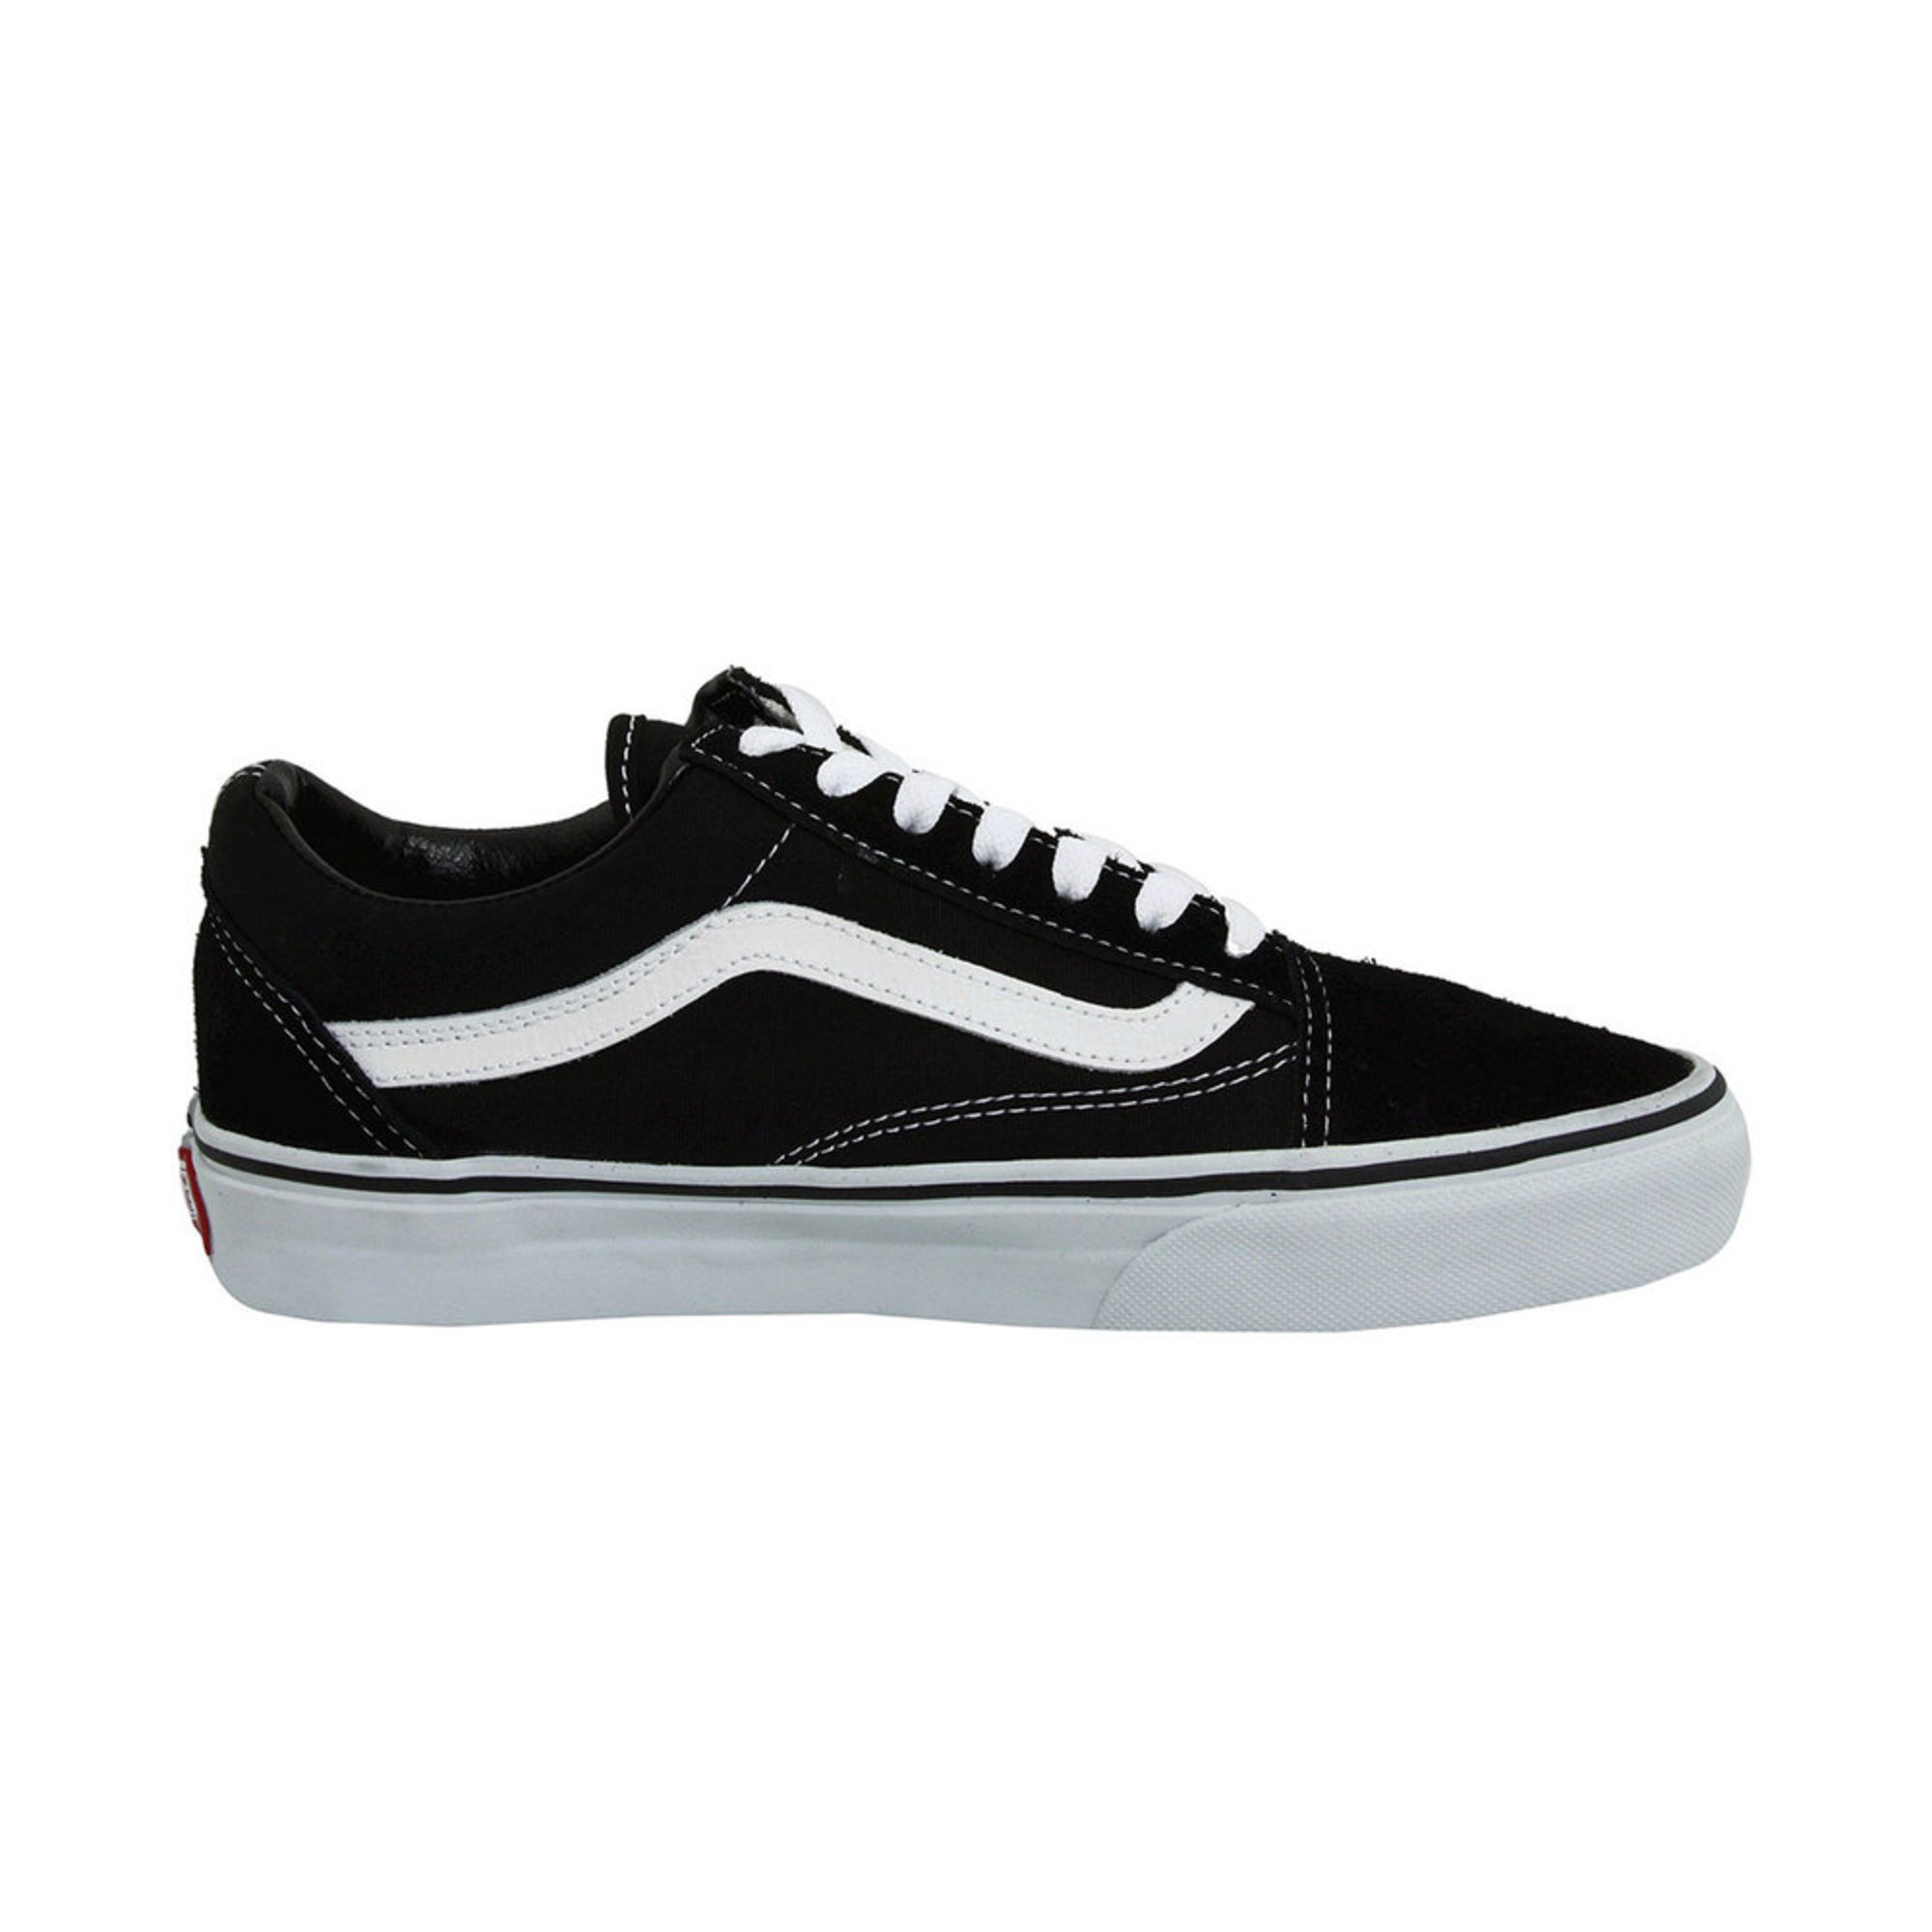 fa8b61c0619 Vans. Vans Men s Old Skool Skate Shoe